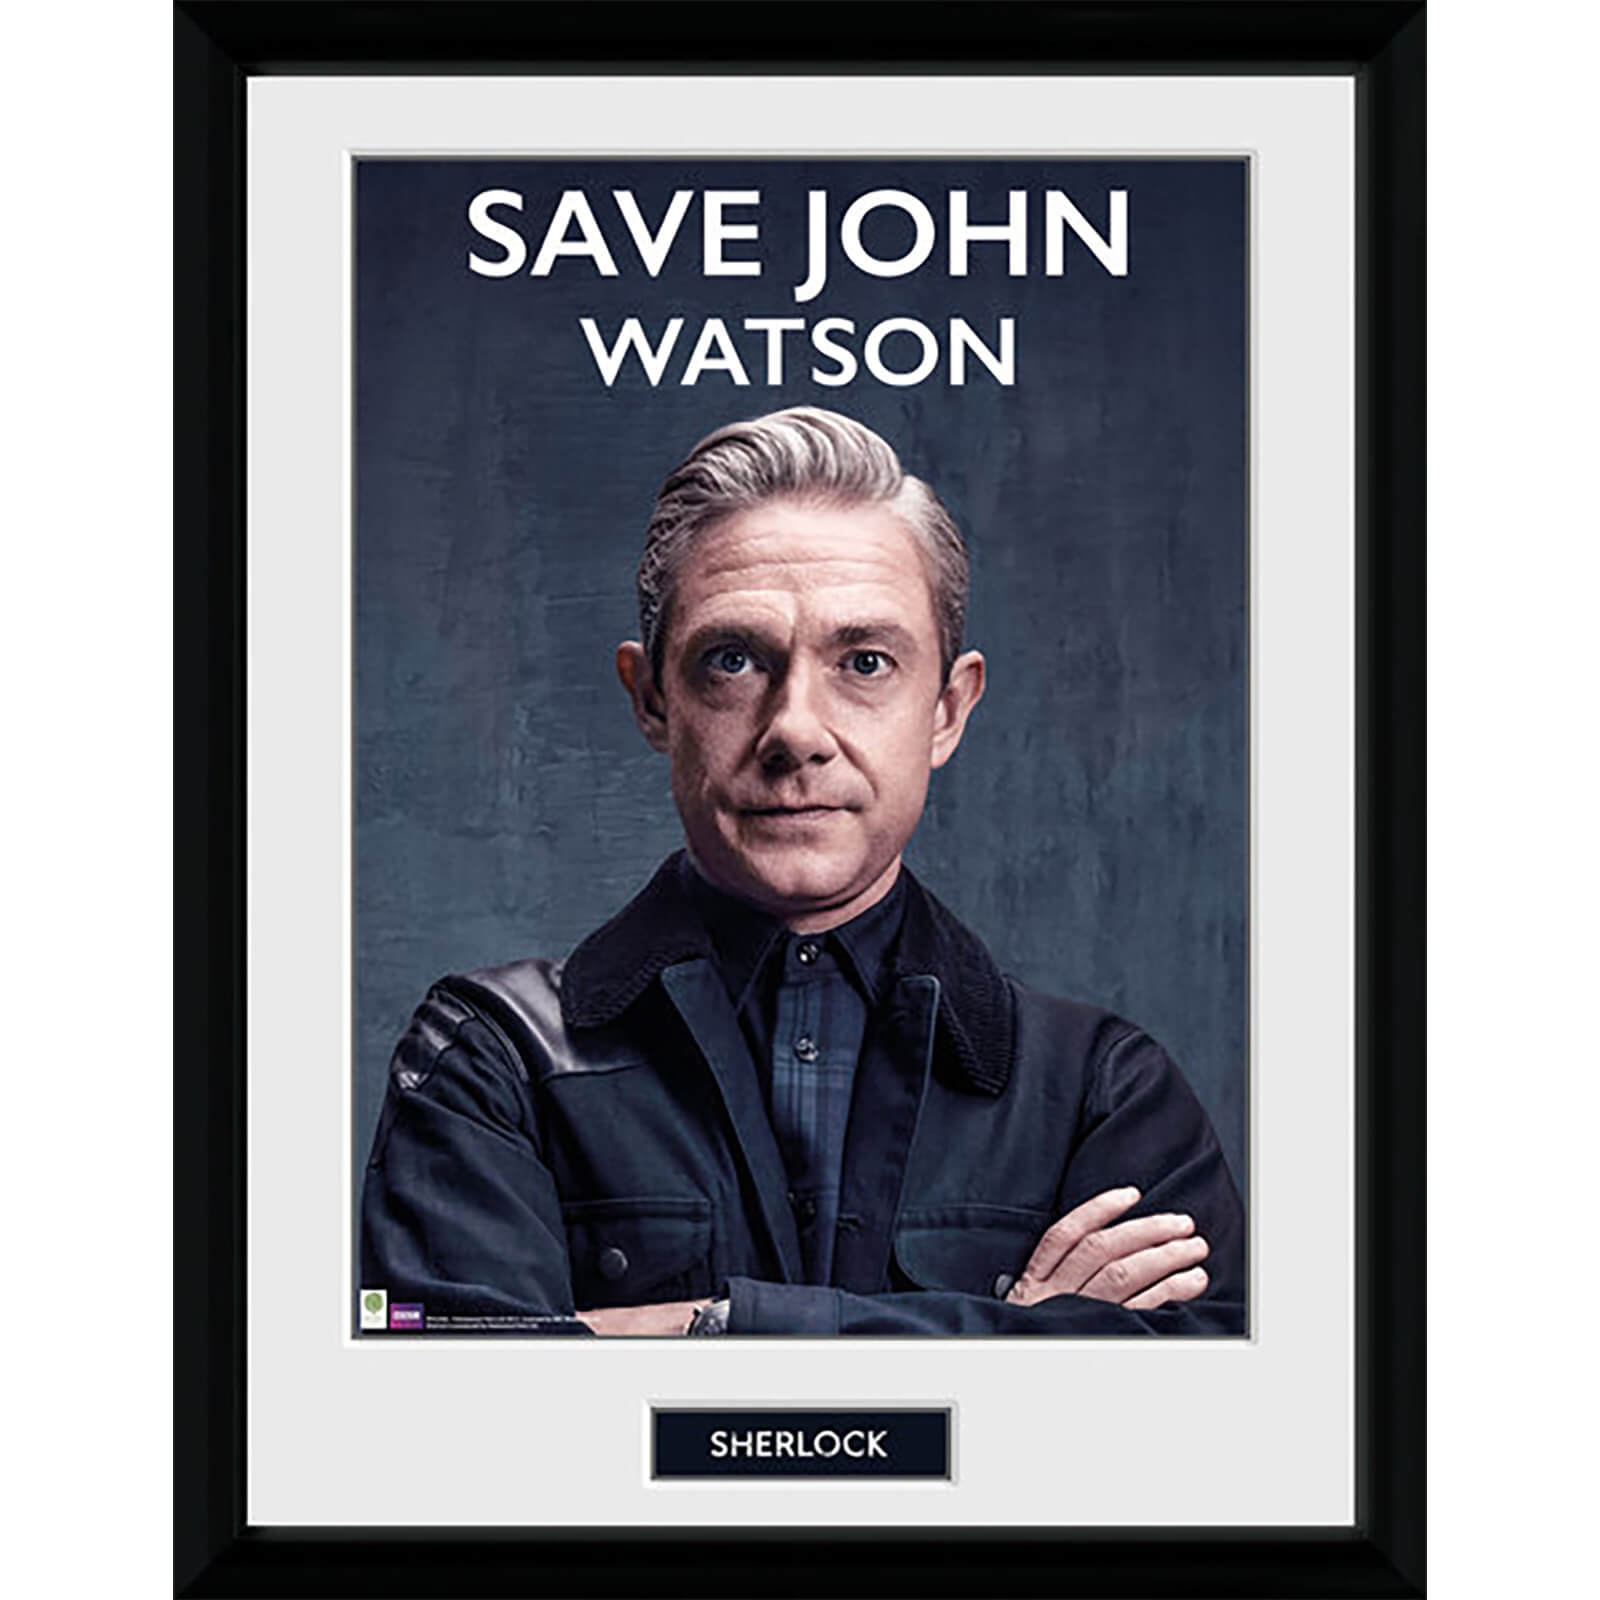 Sherlock Save John Watson - 16 x 12 Inches Framed Photograph